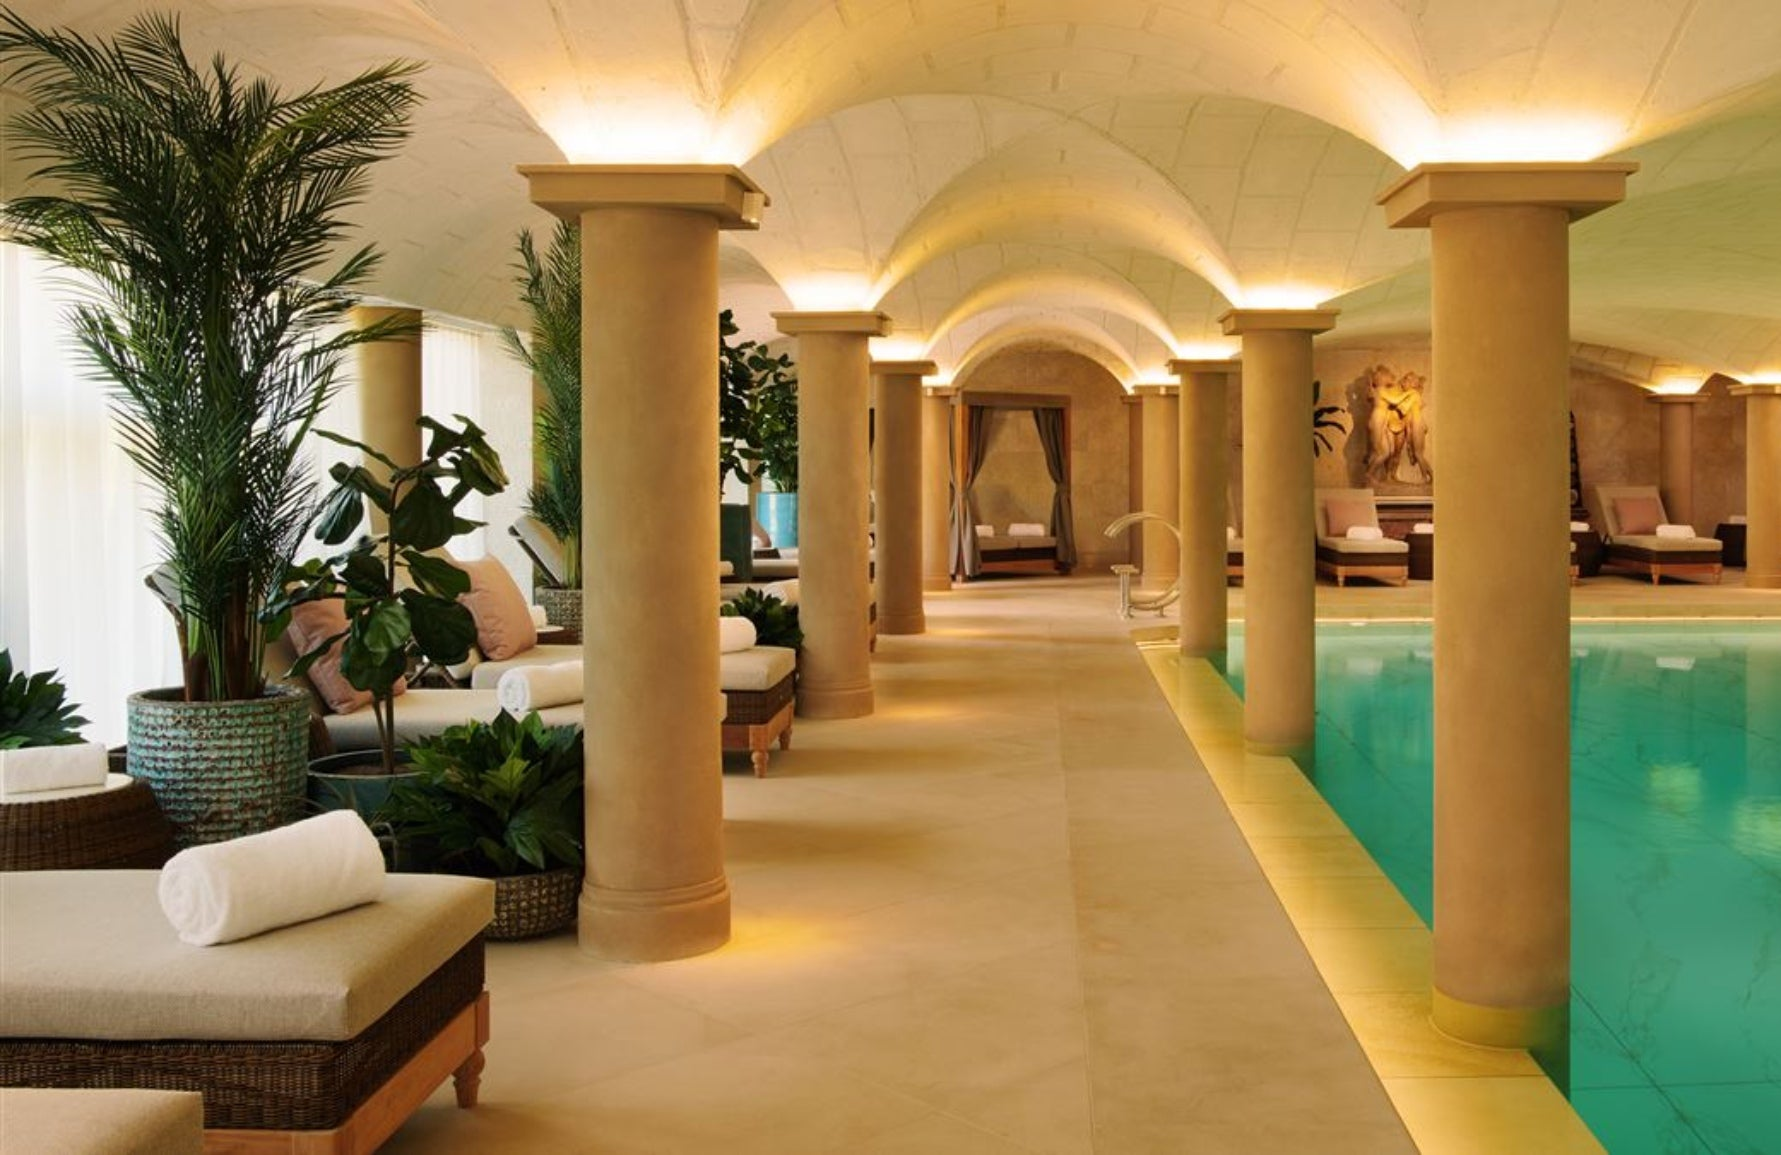 Three Graces Spa at Grantley Hall | Read more about Britain's top spa hotels at LuxDeco.com